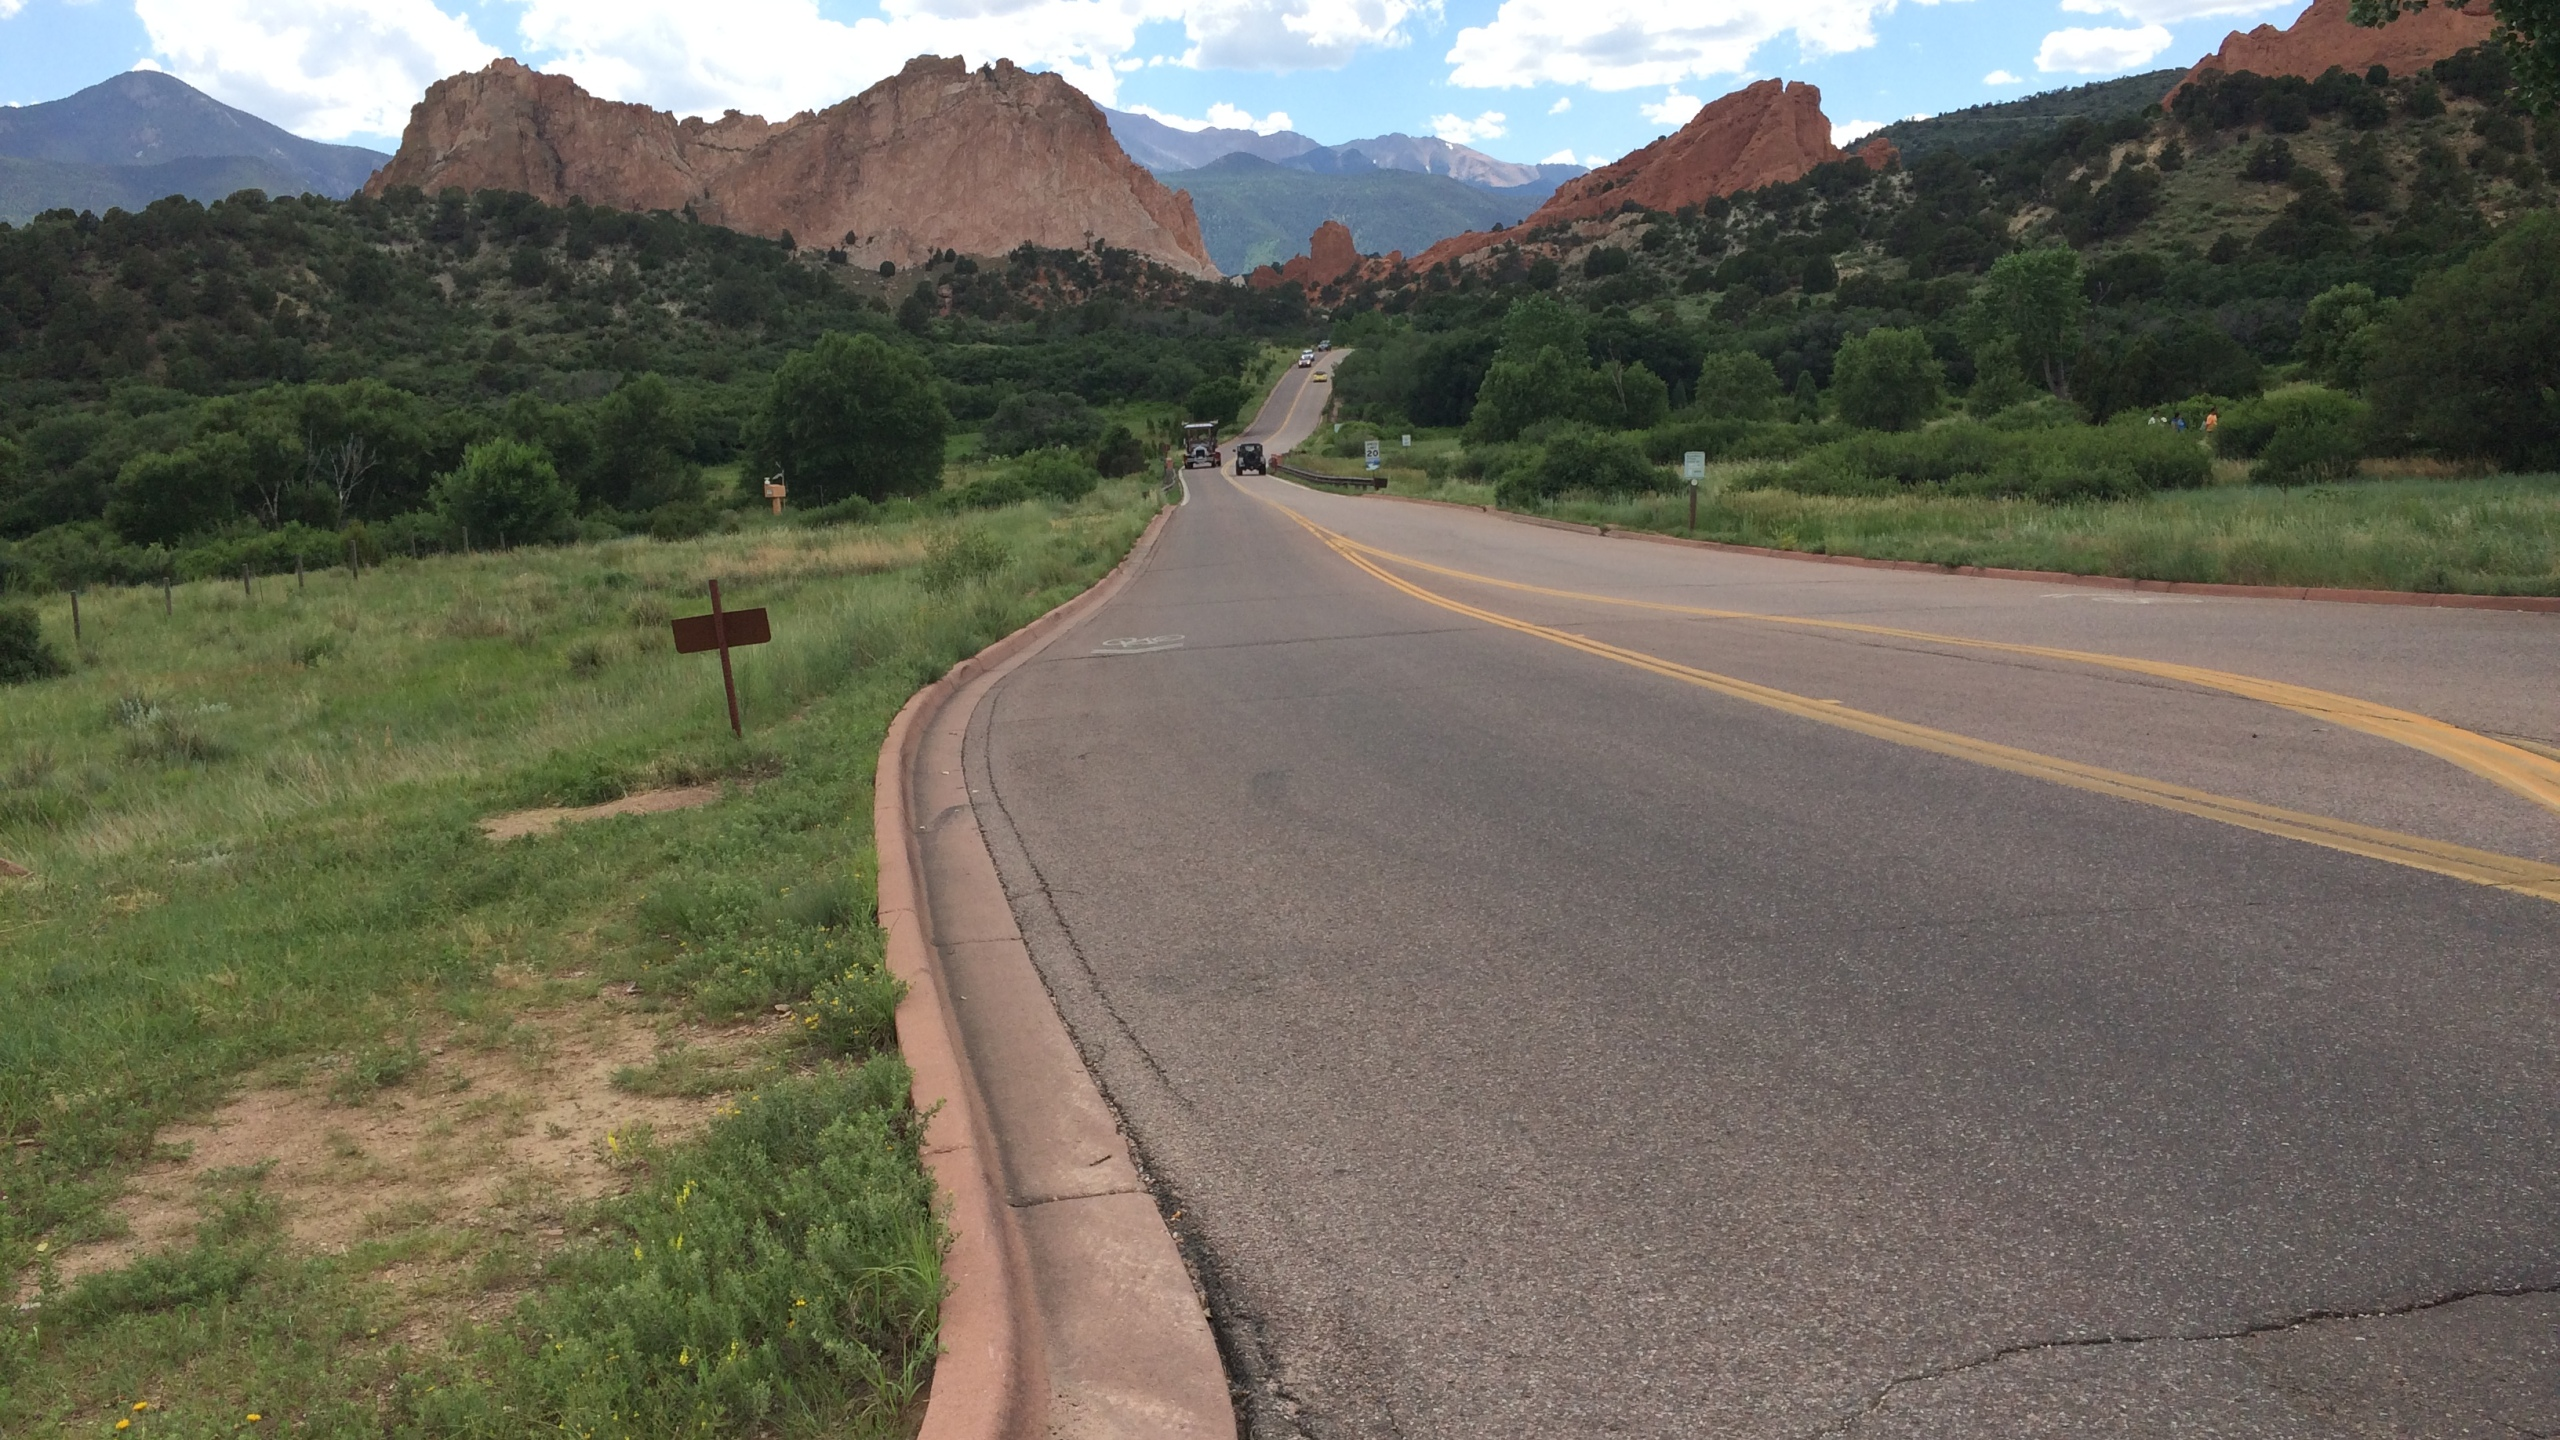 Roads in Garden of the Gods will be closed overnight for about three weeks for paving. _ Mike Duran - FOX21 News_177885